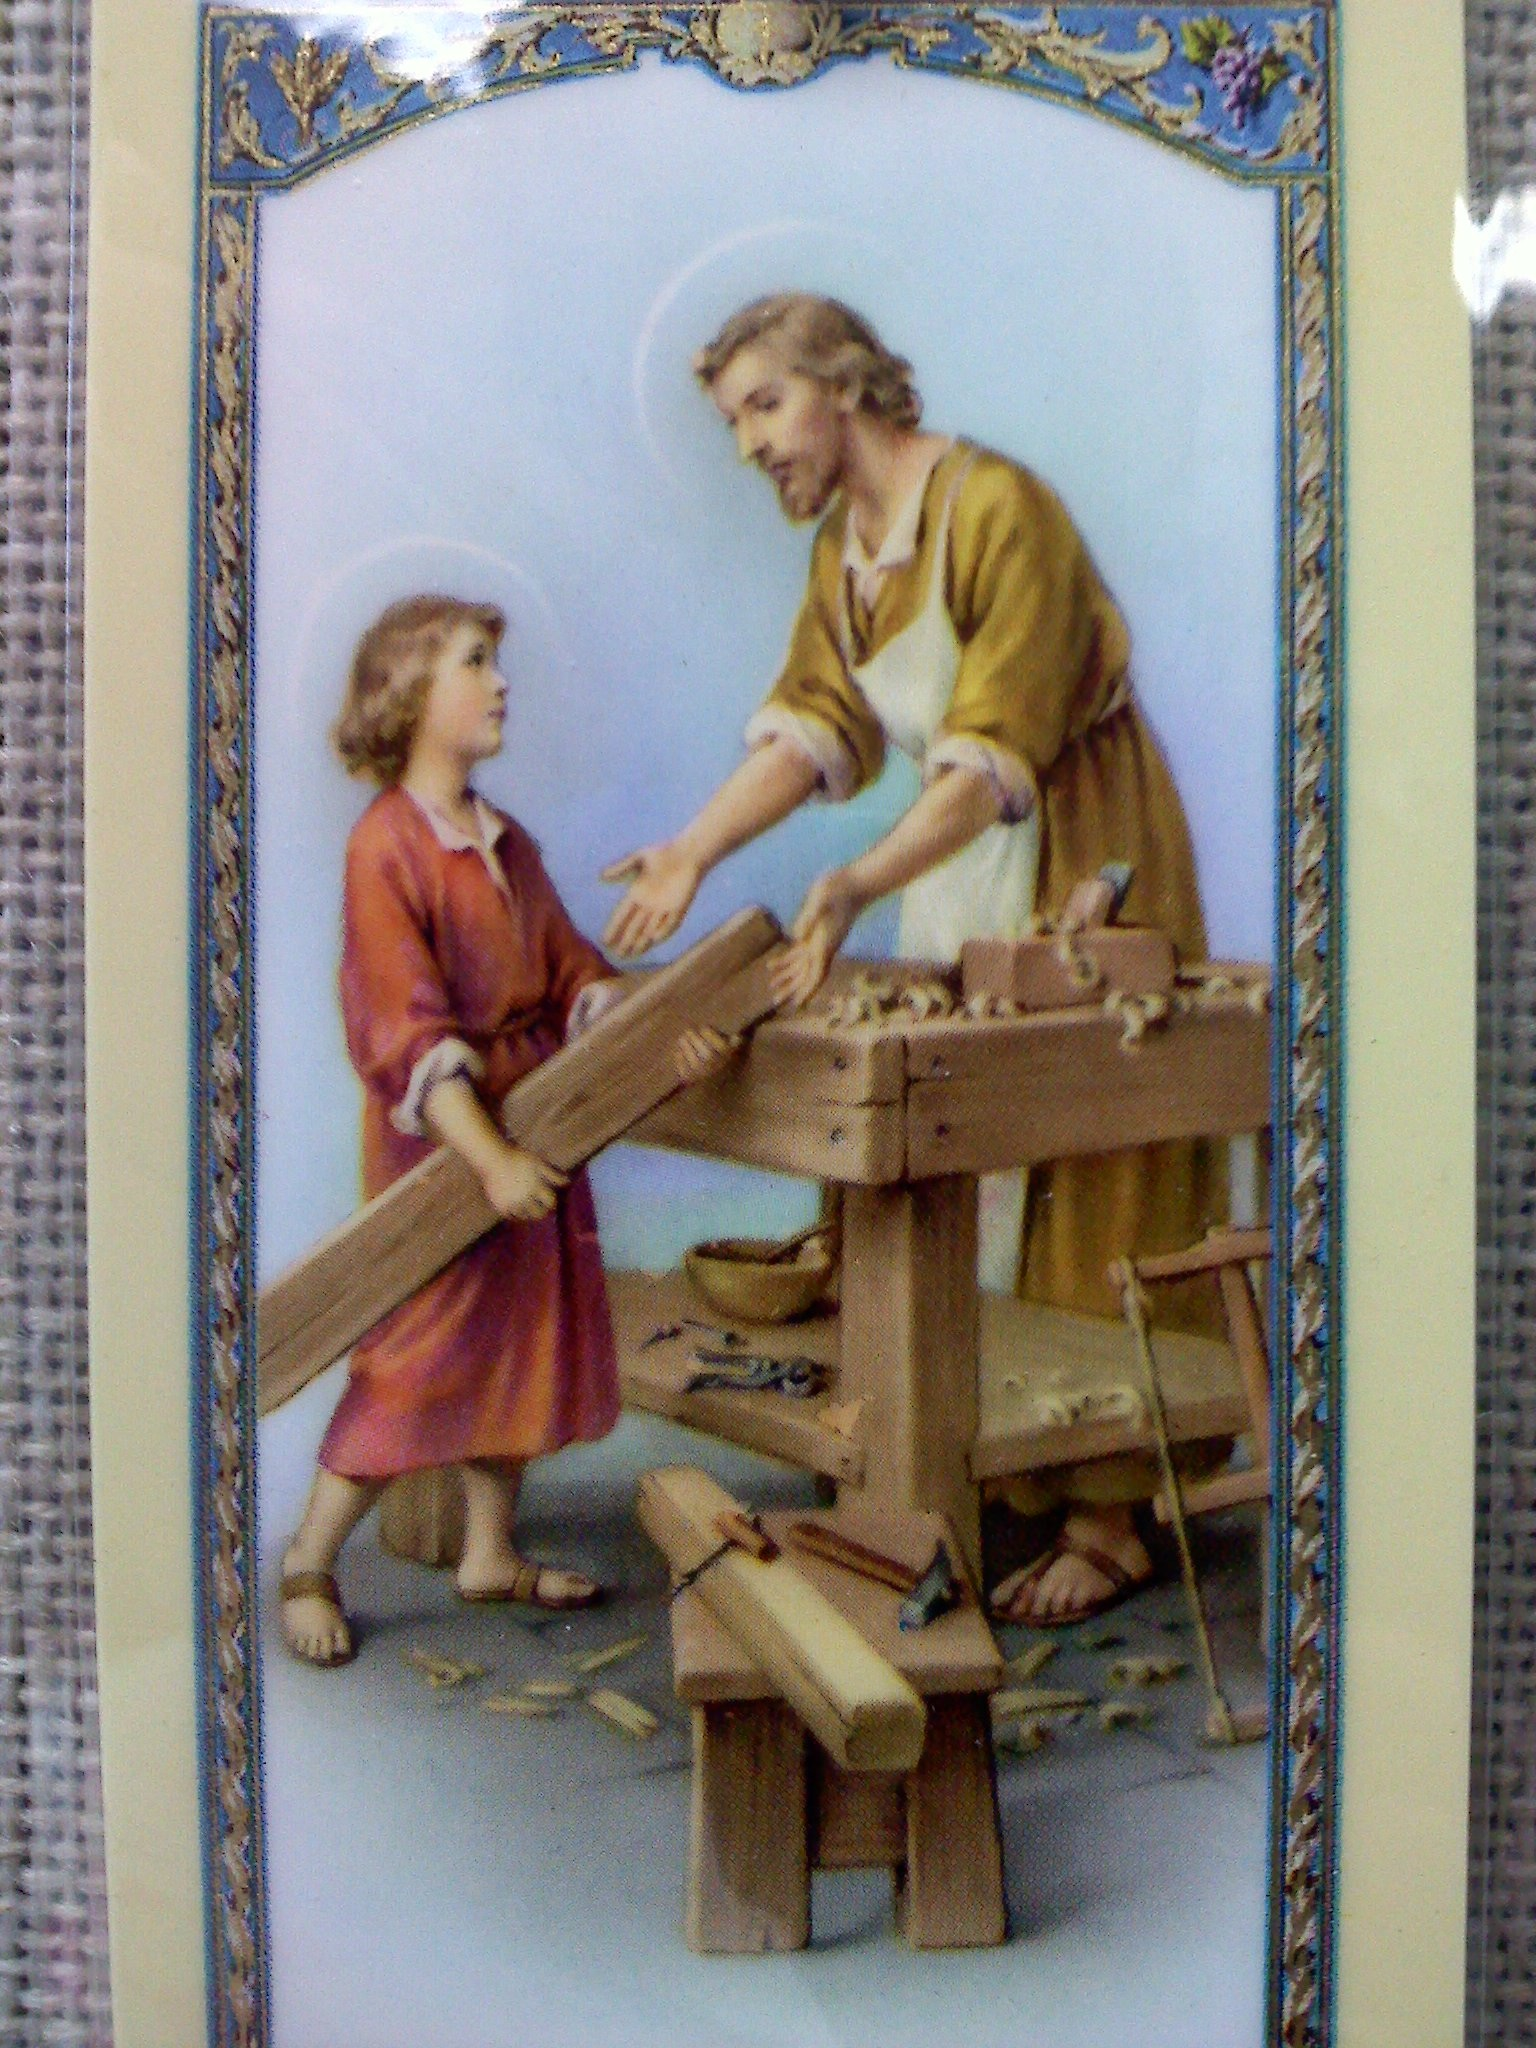 start awesome 30 day novena to st joseph on feb 18 a